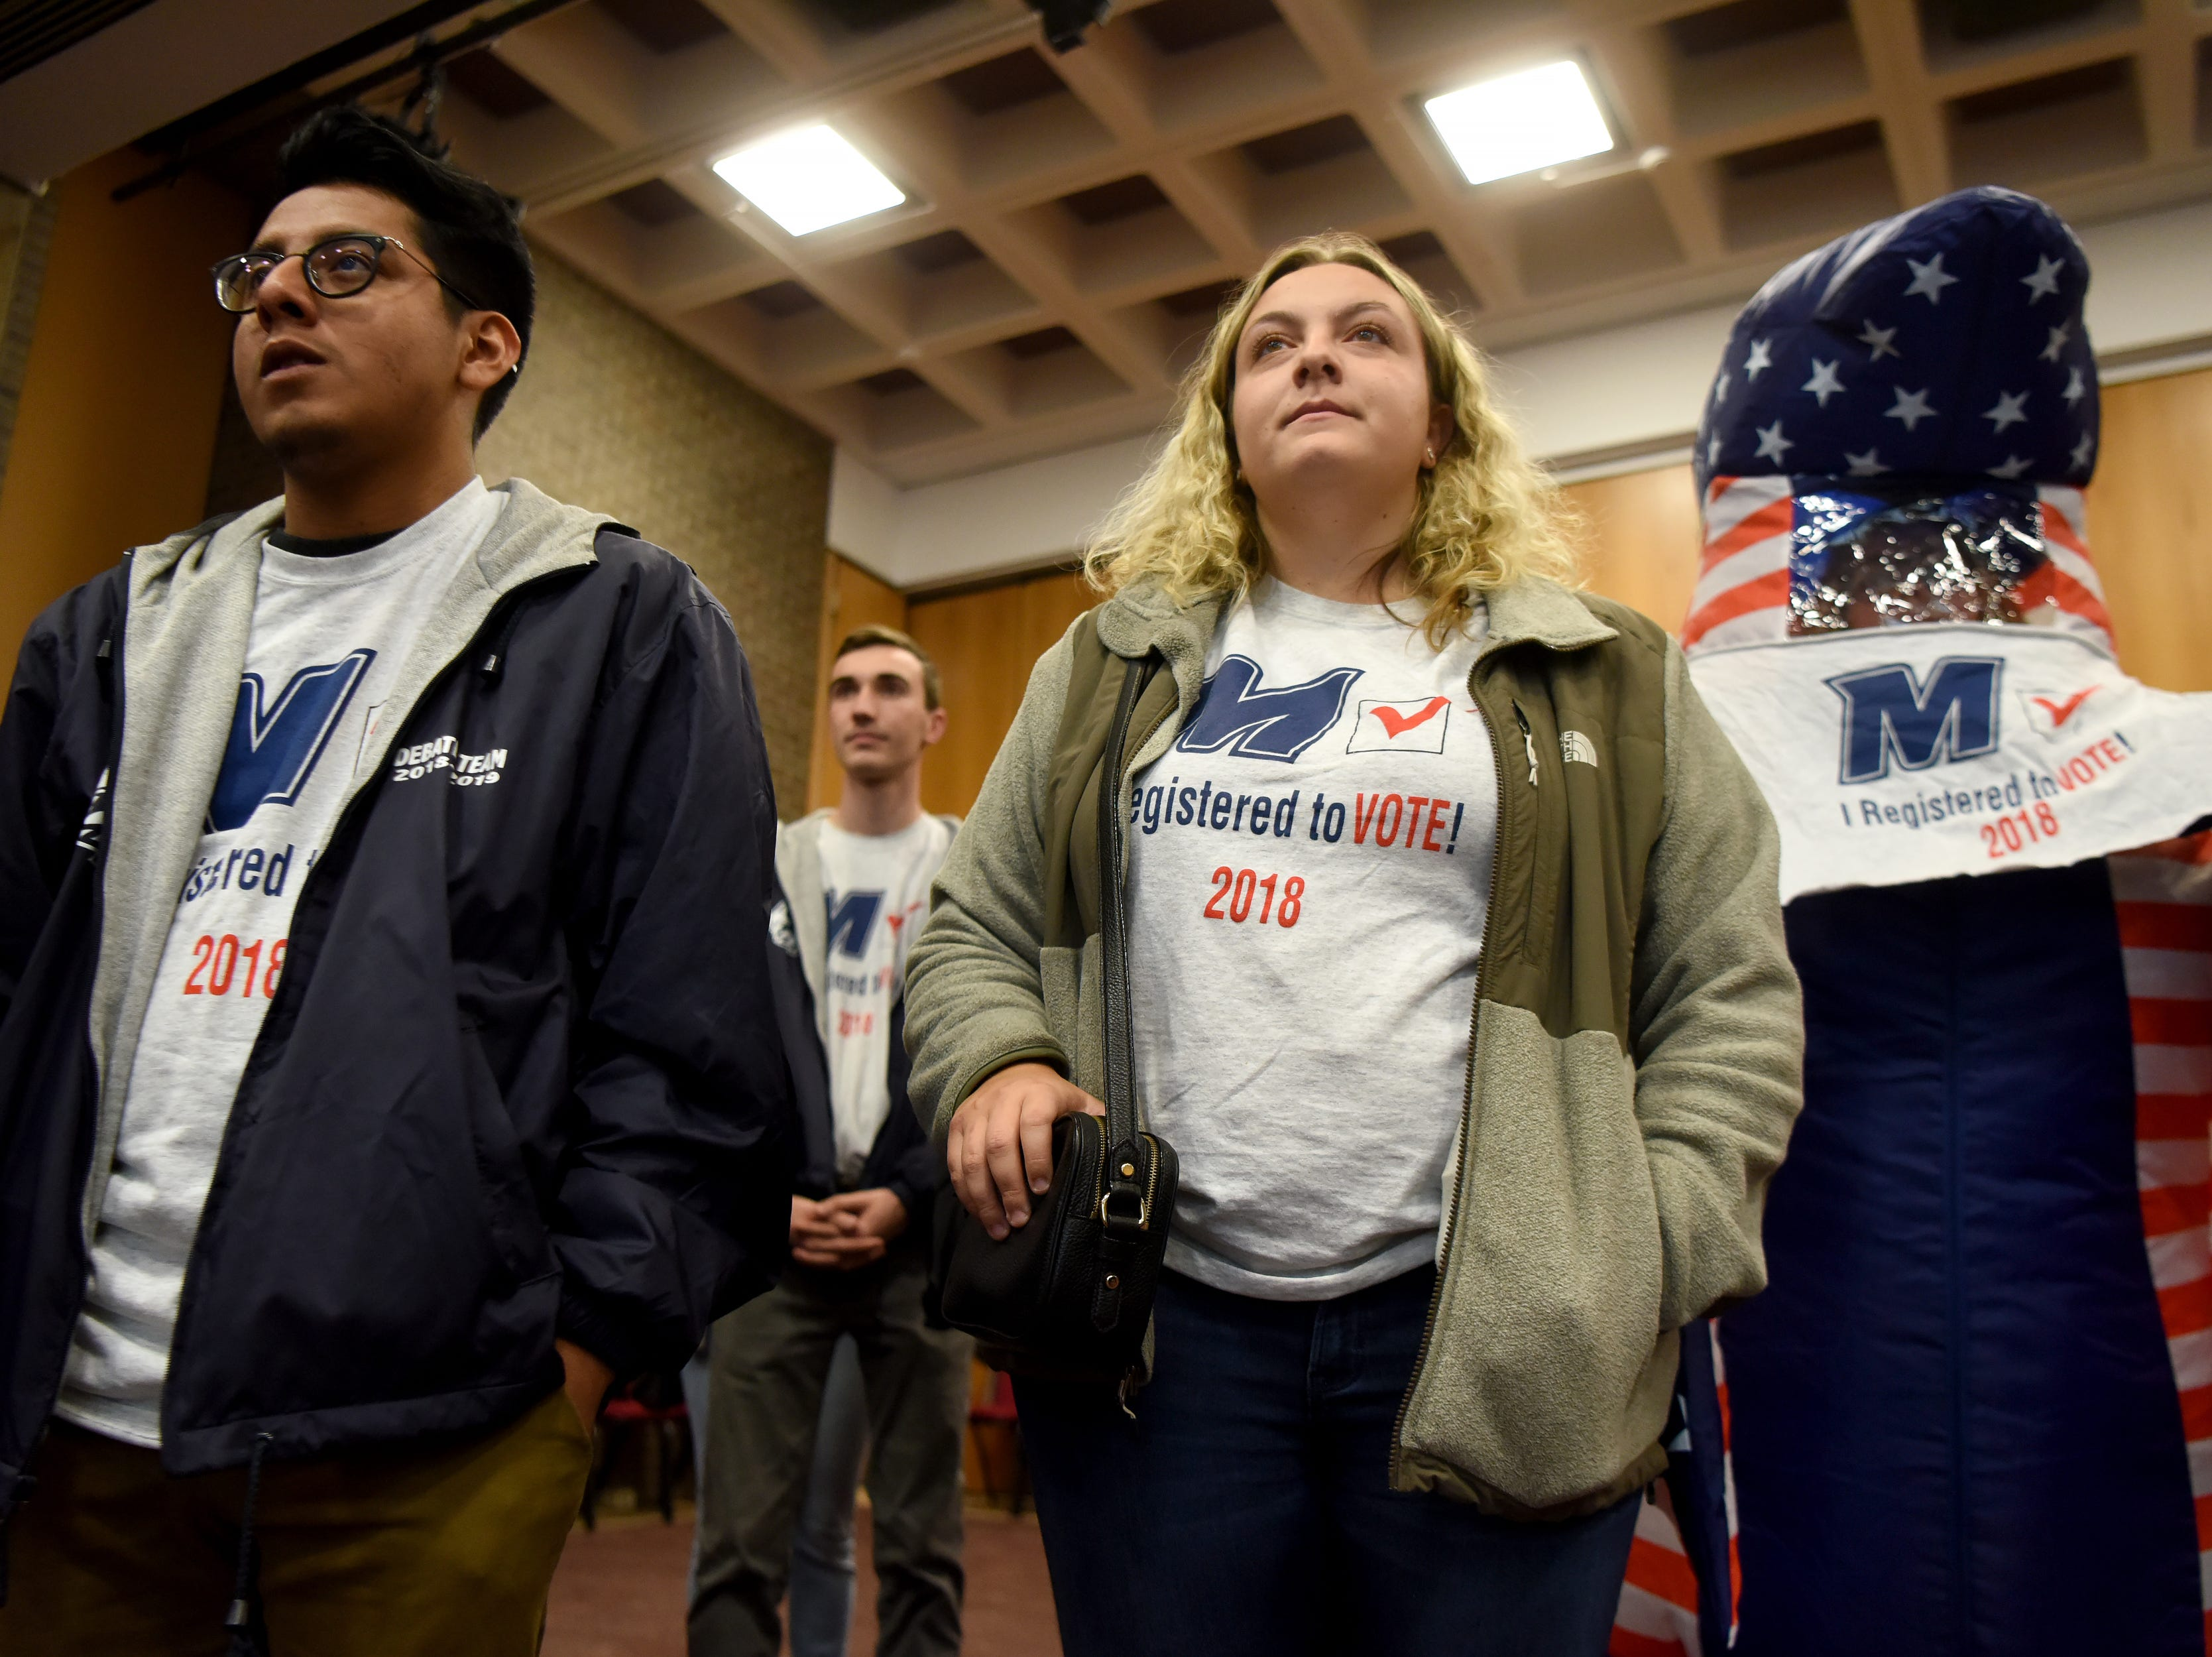 NJ colleges compete to register voters, students push for more engagement among peers